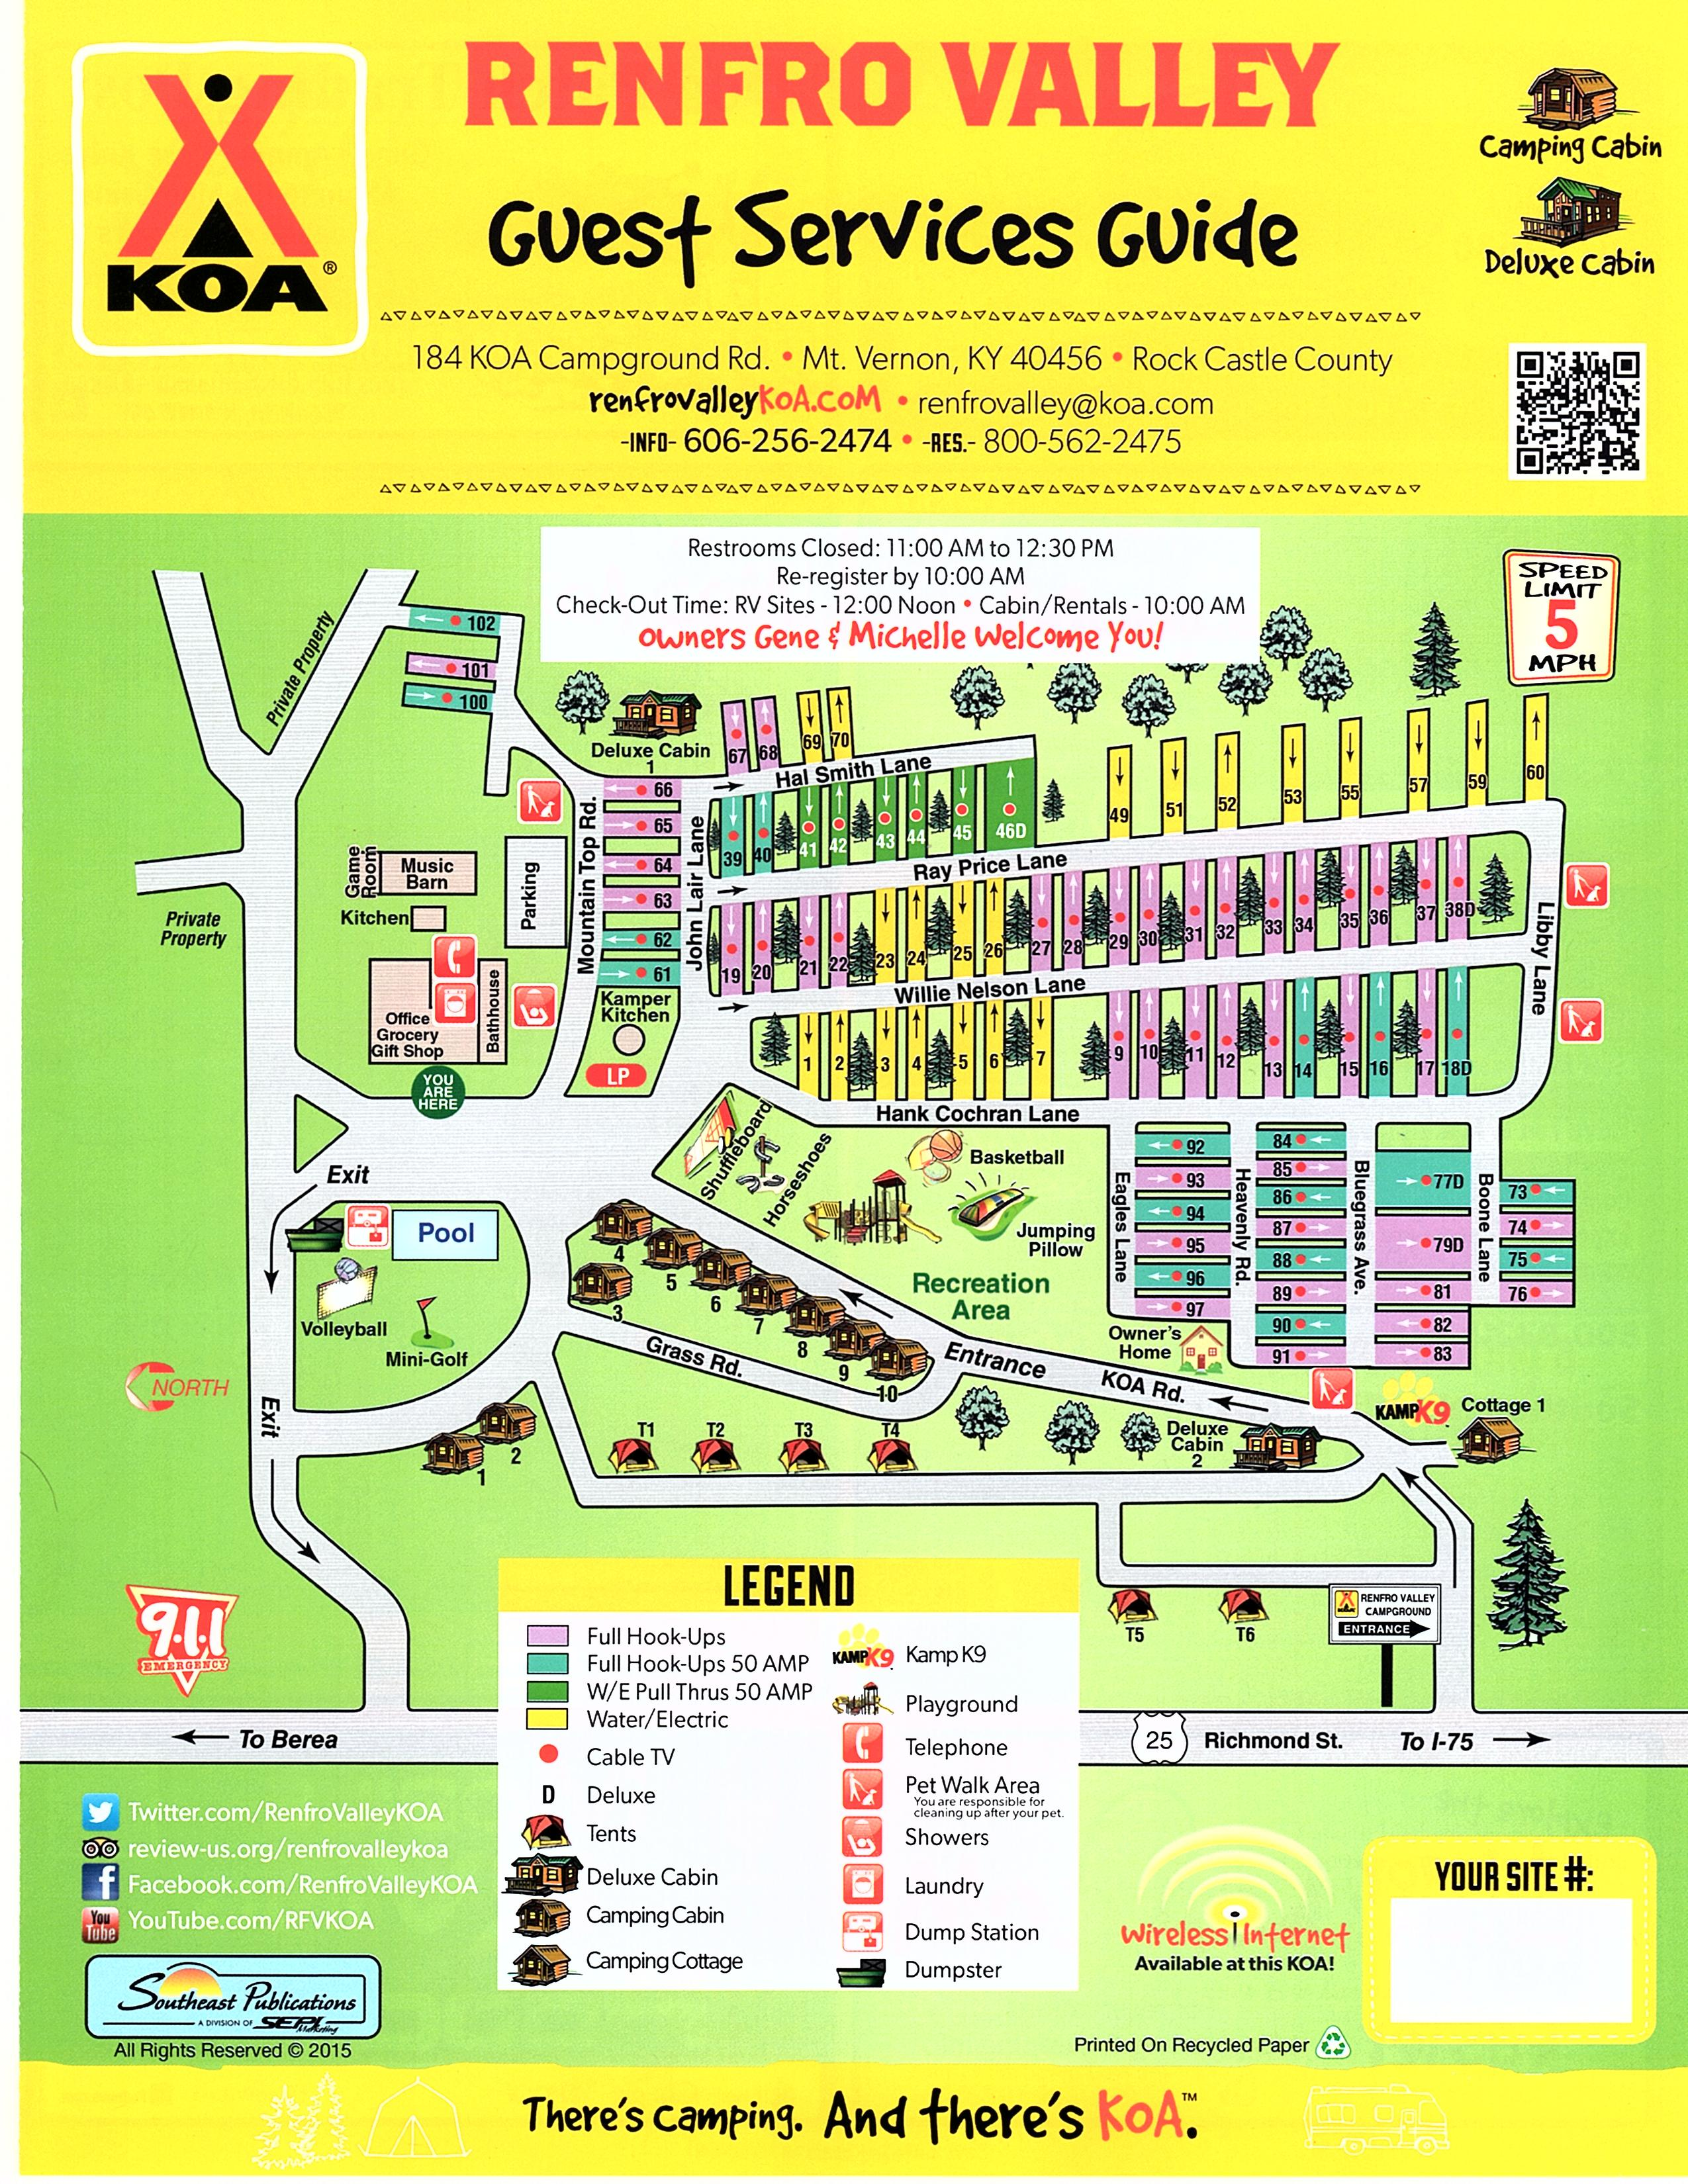 Mt Vernon Kentucky Campground Renfro Valley KOA